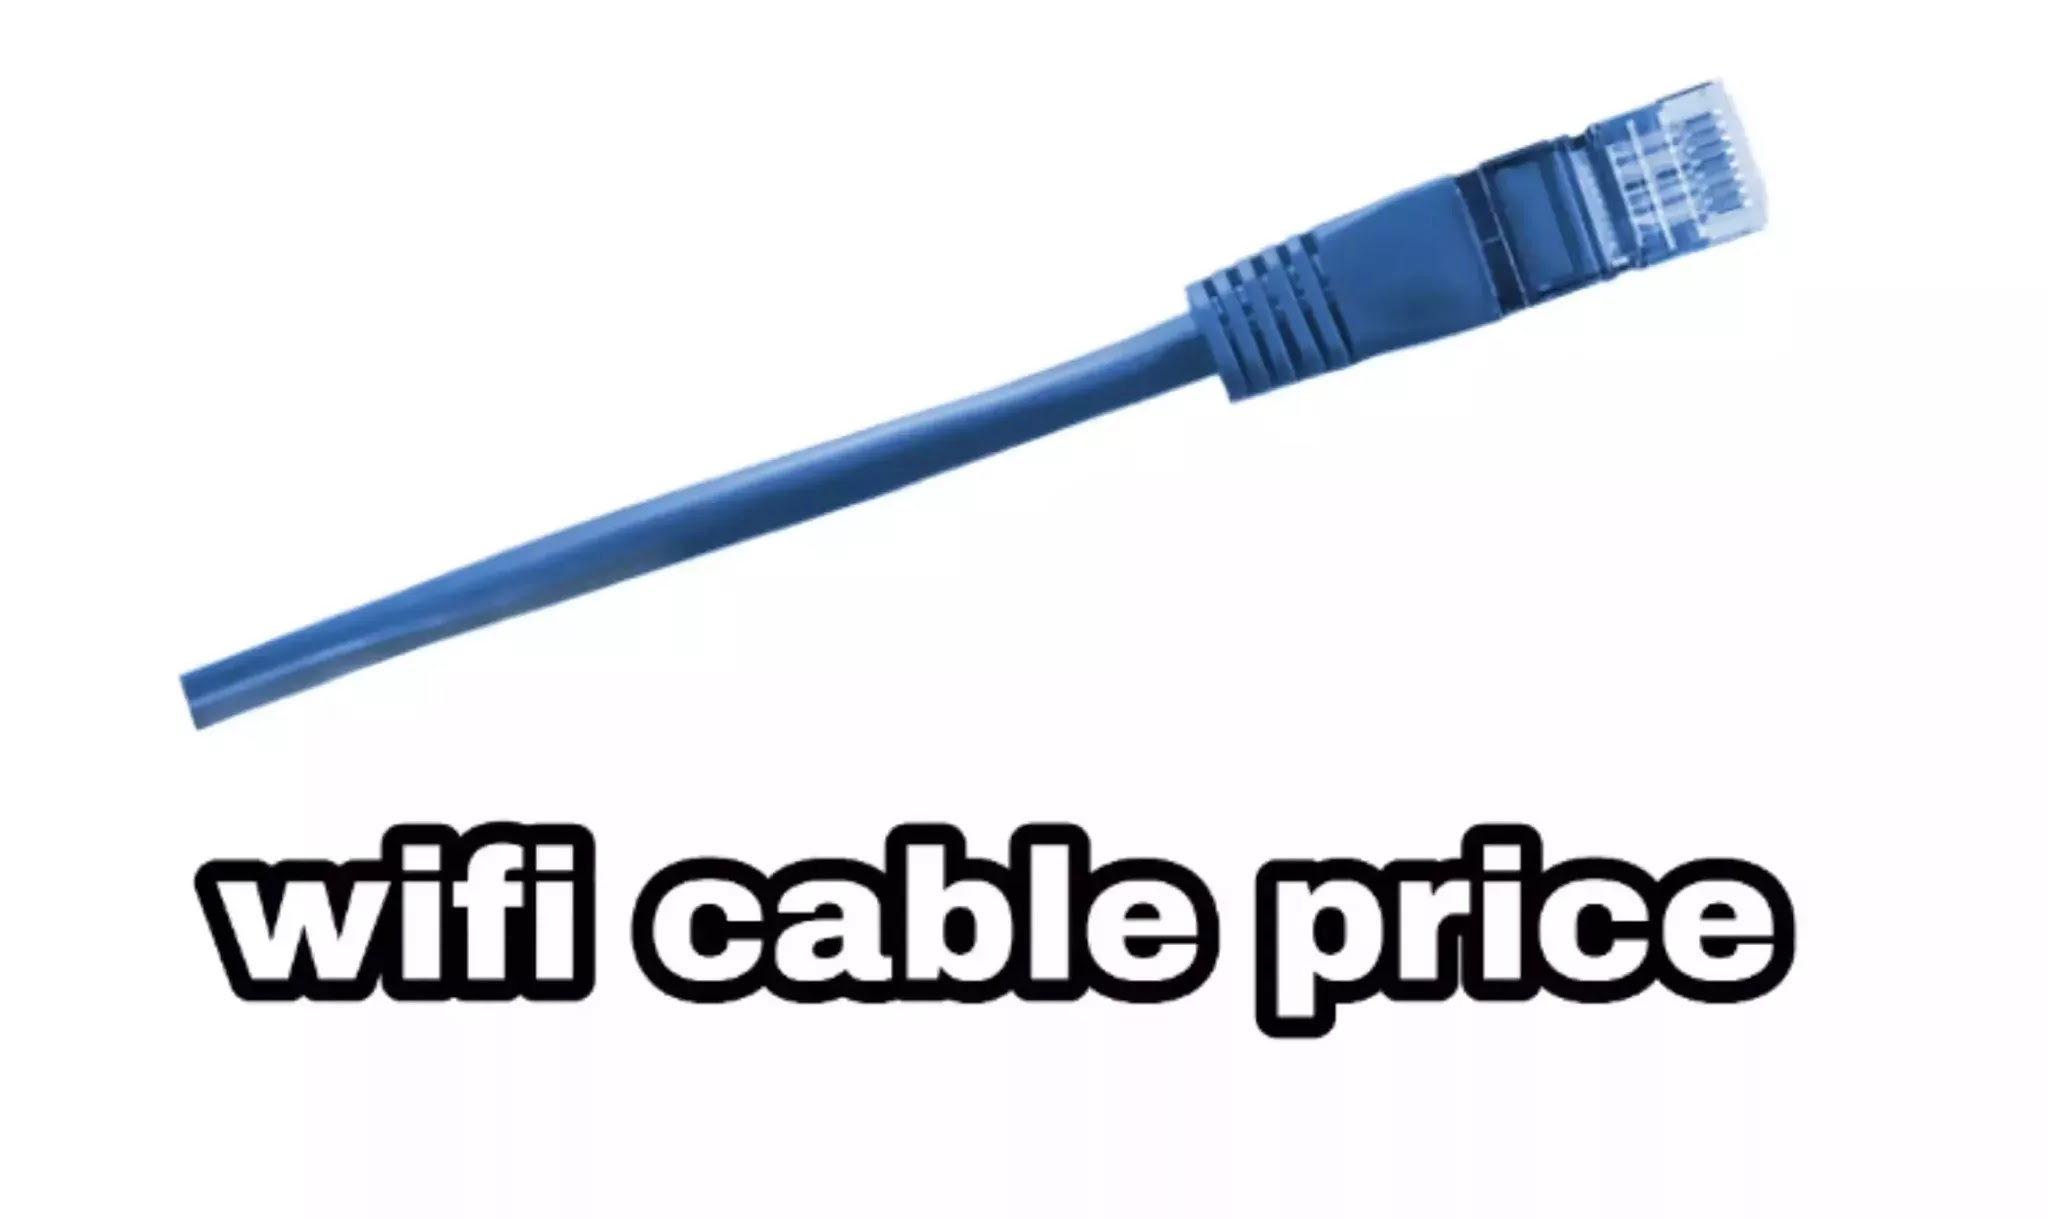 Wifi cable price bd, wifi fiver cable price bd, fiver cable price bd,